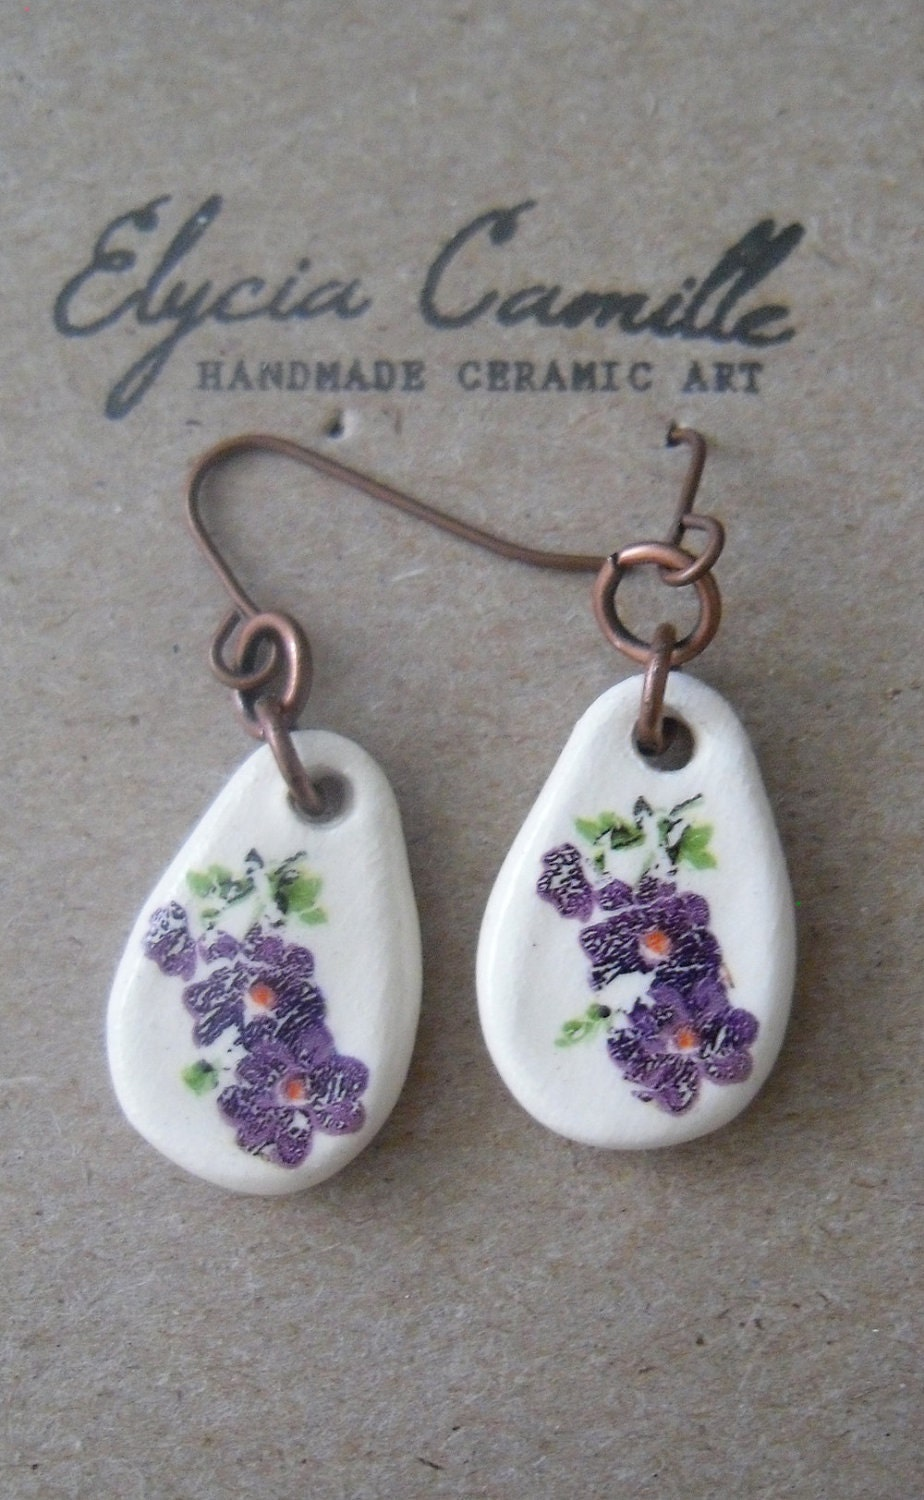 handmade ceramic earrings, dangle, purple flowers, antique copper colored fish hooks